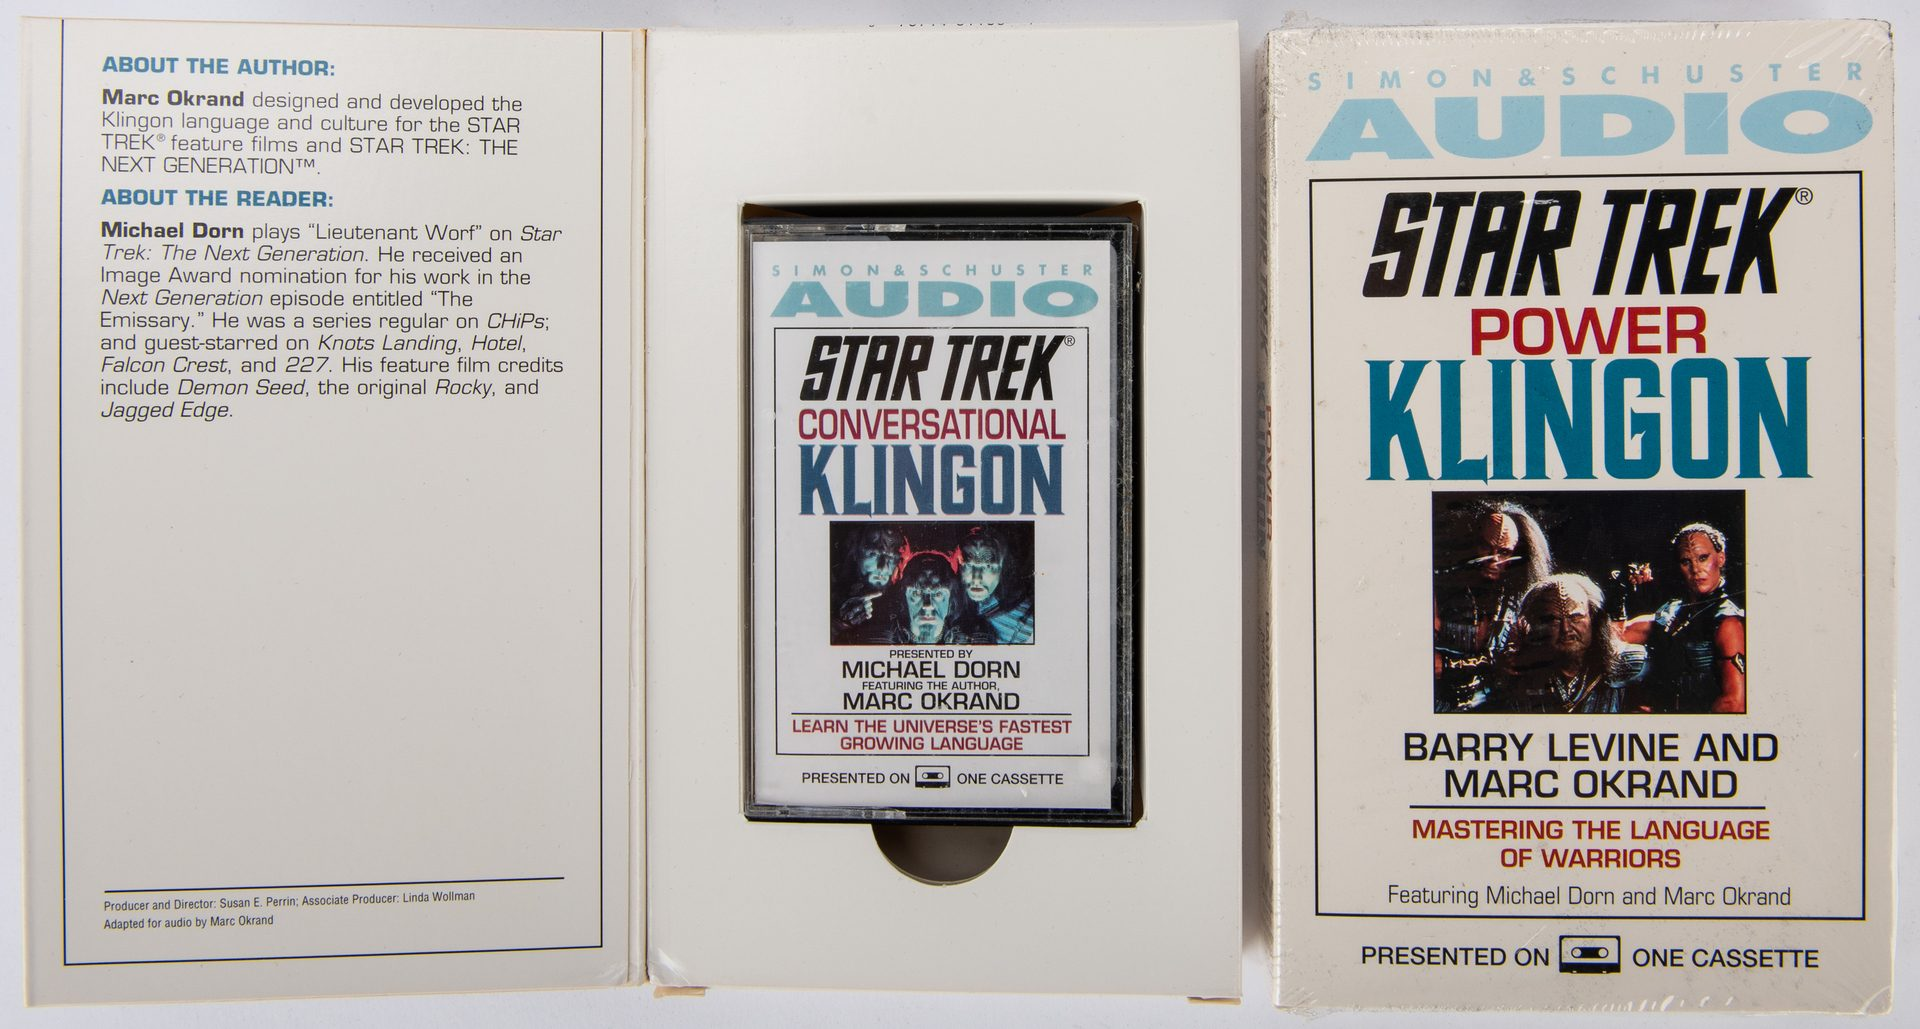 Lot 430: Group of 108 Star Trek Collectibles, inc. Enterprise Clock